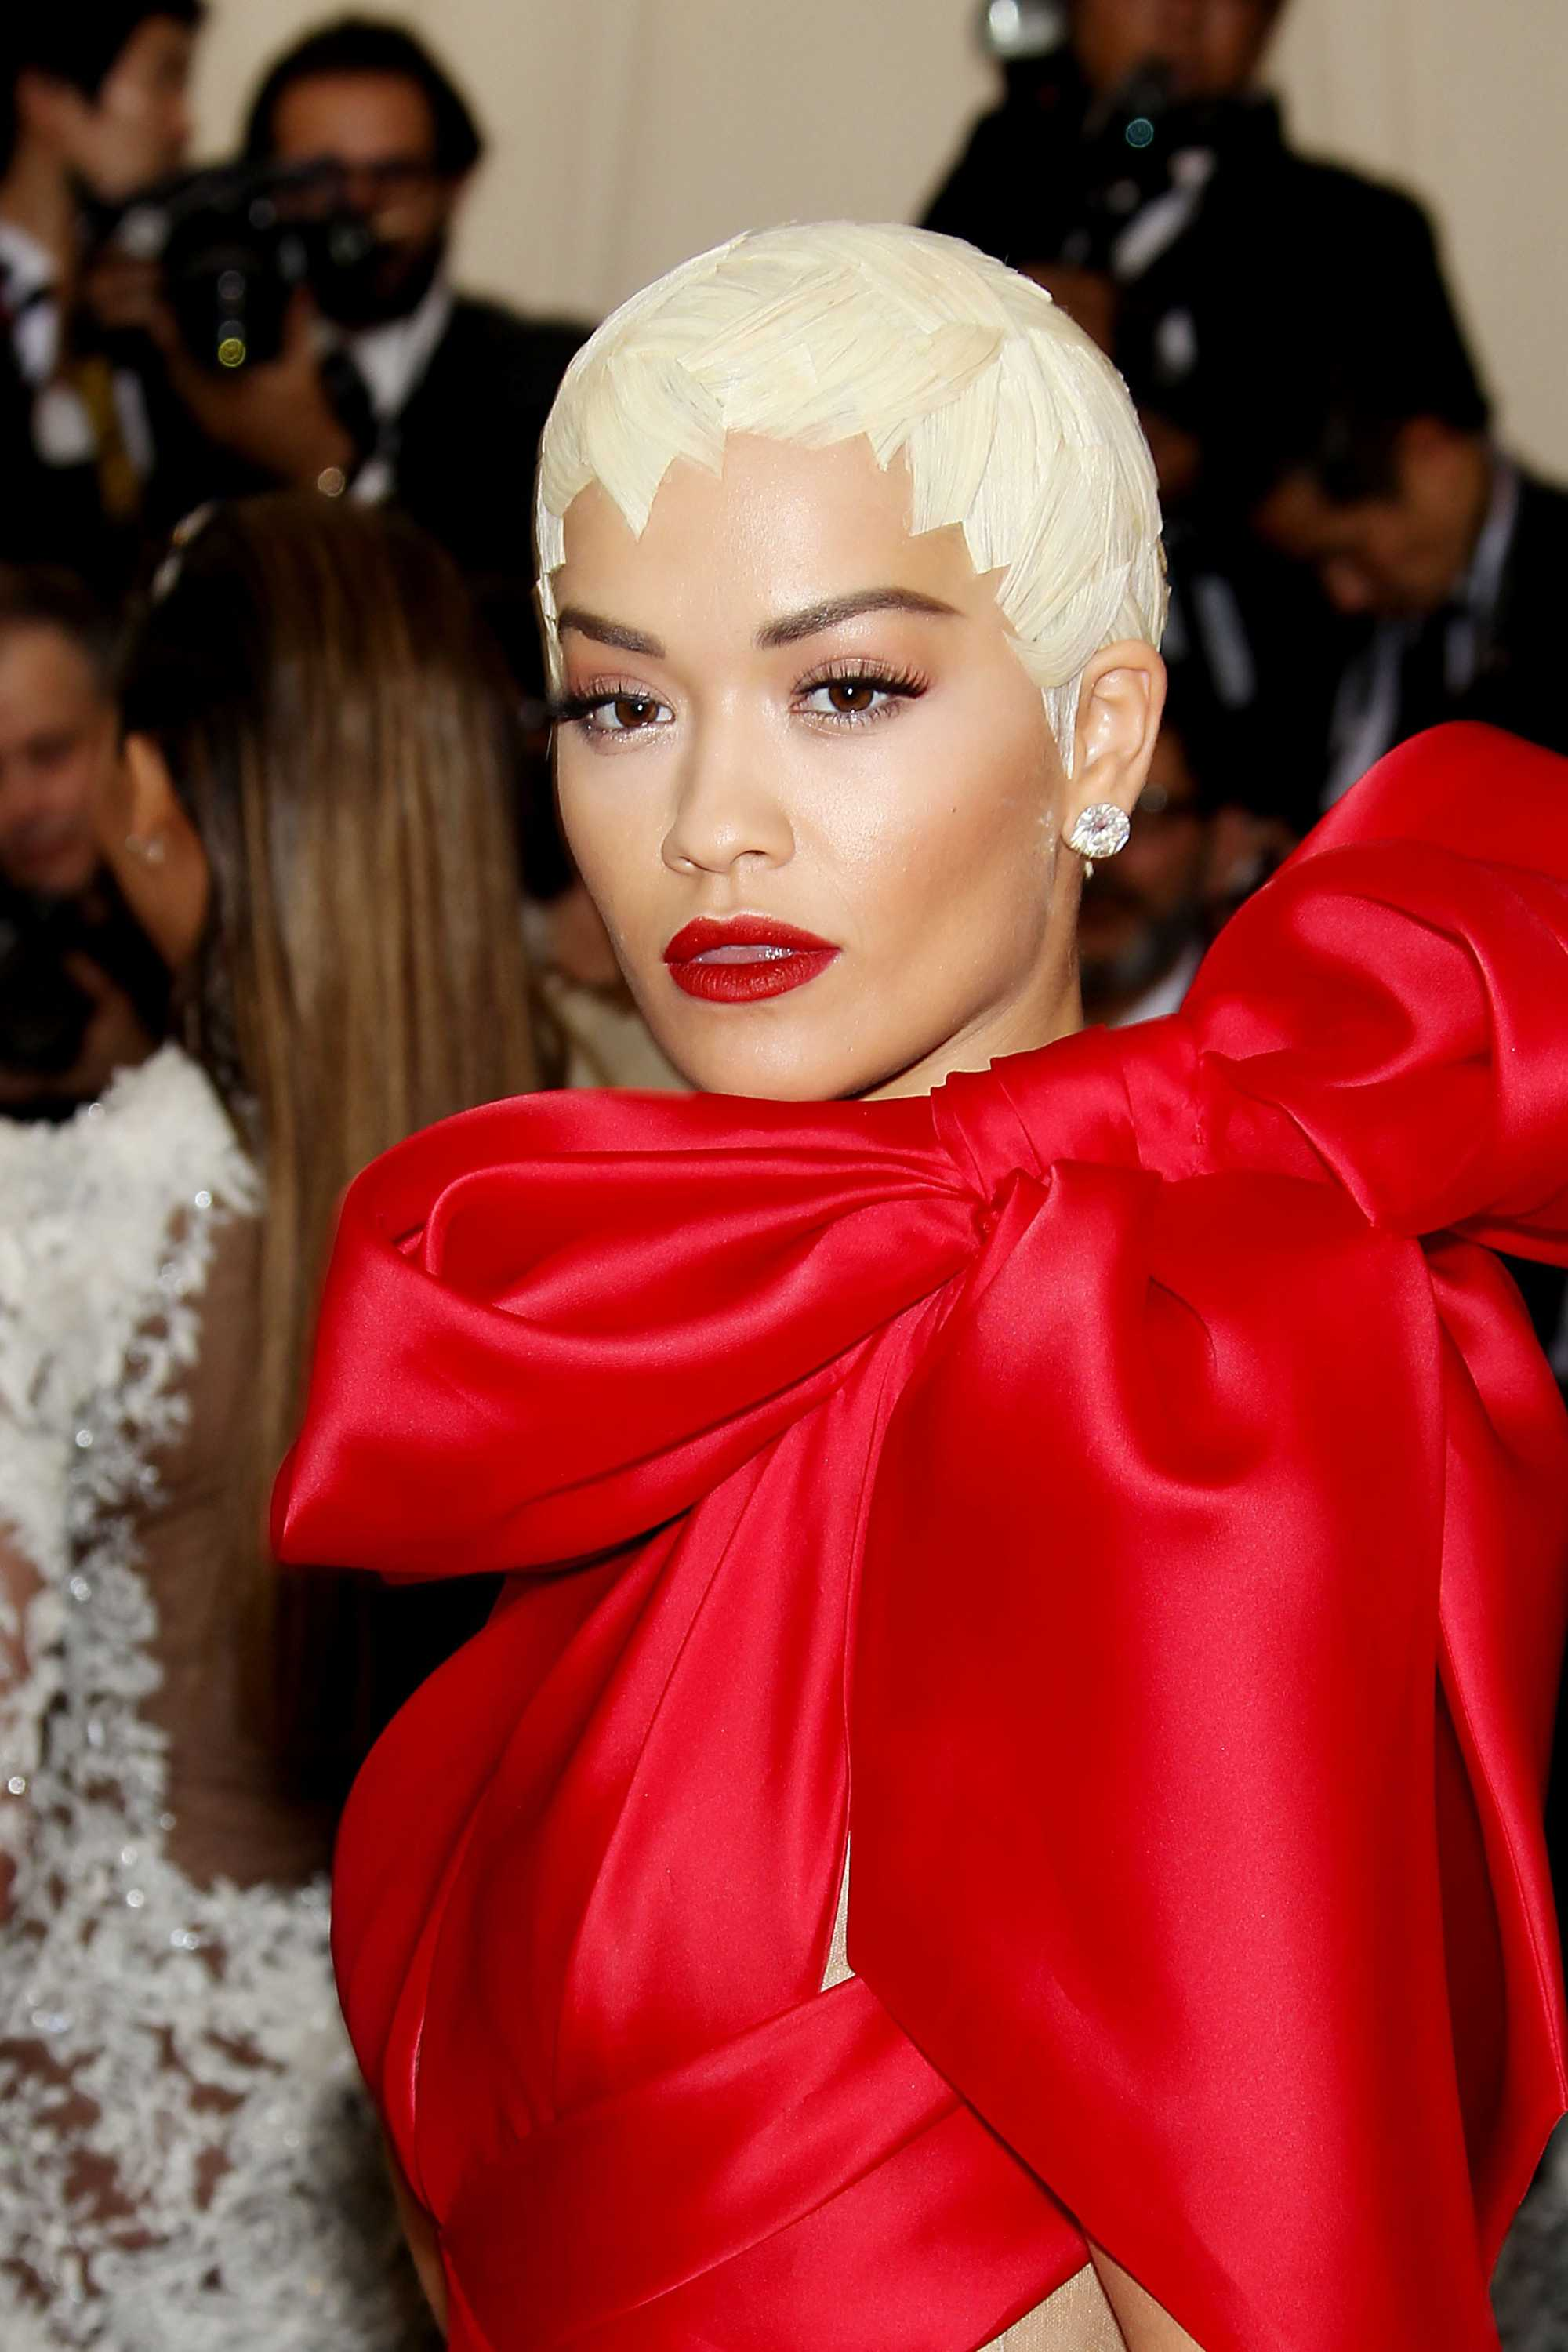 rita ora with quirky short hairstyle with red bow dress at the met gala event